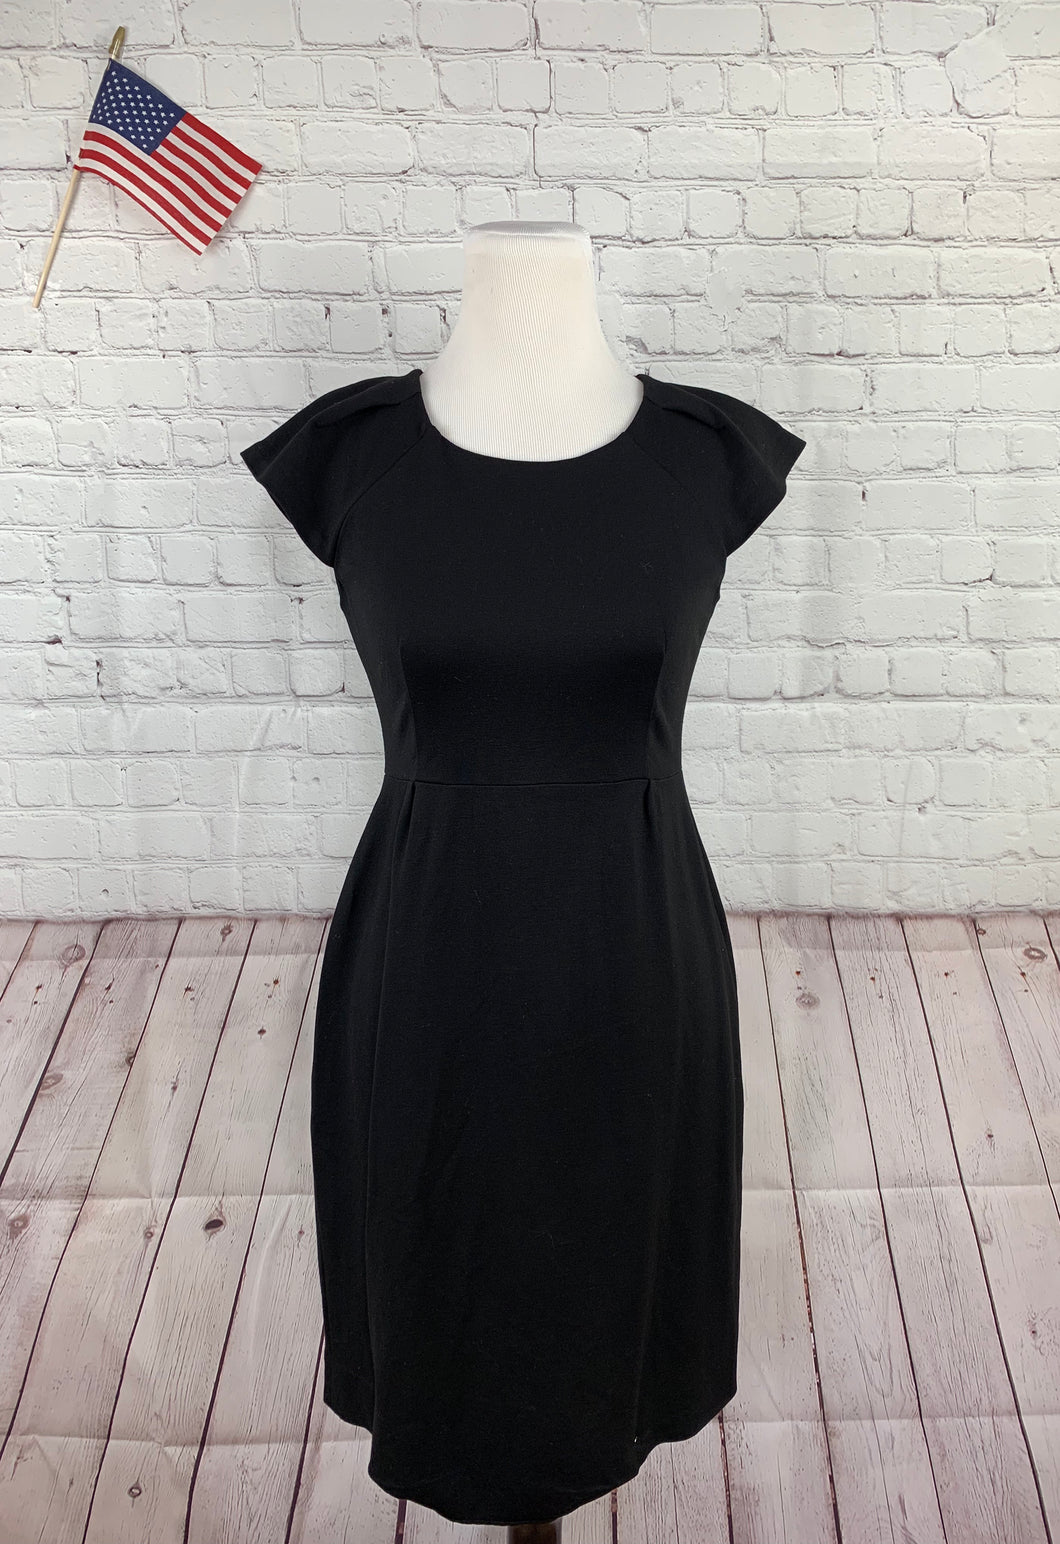 Kate Spade Little Black Women's Solid Sheath Dress 6 - SUIT CHARITY OUTLET